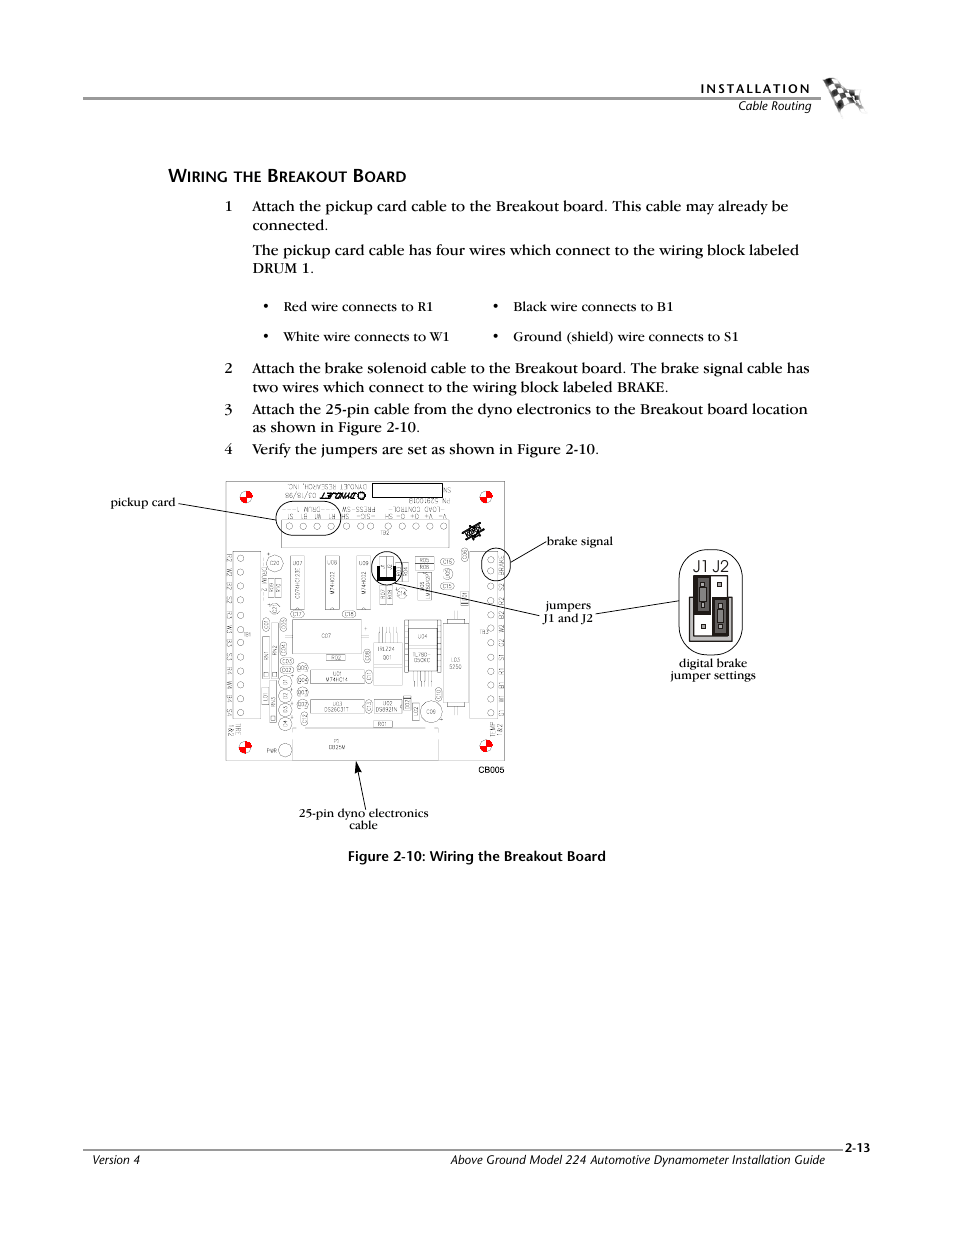 hight resolution of wiring the breakout board dynojet 224x installation guide user manual page 33